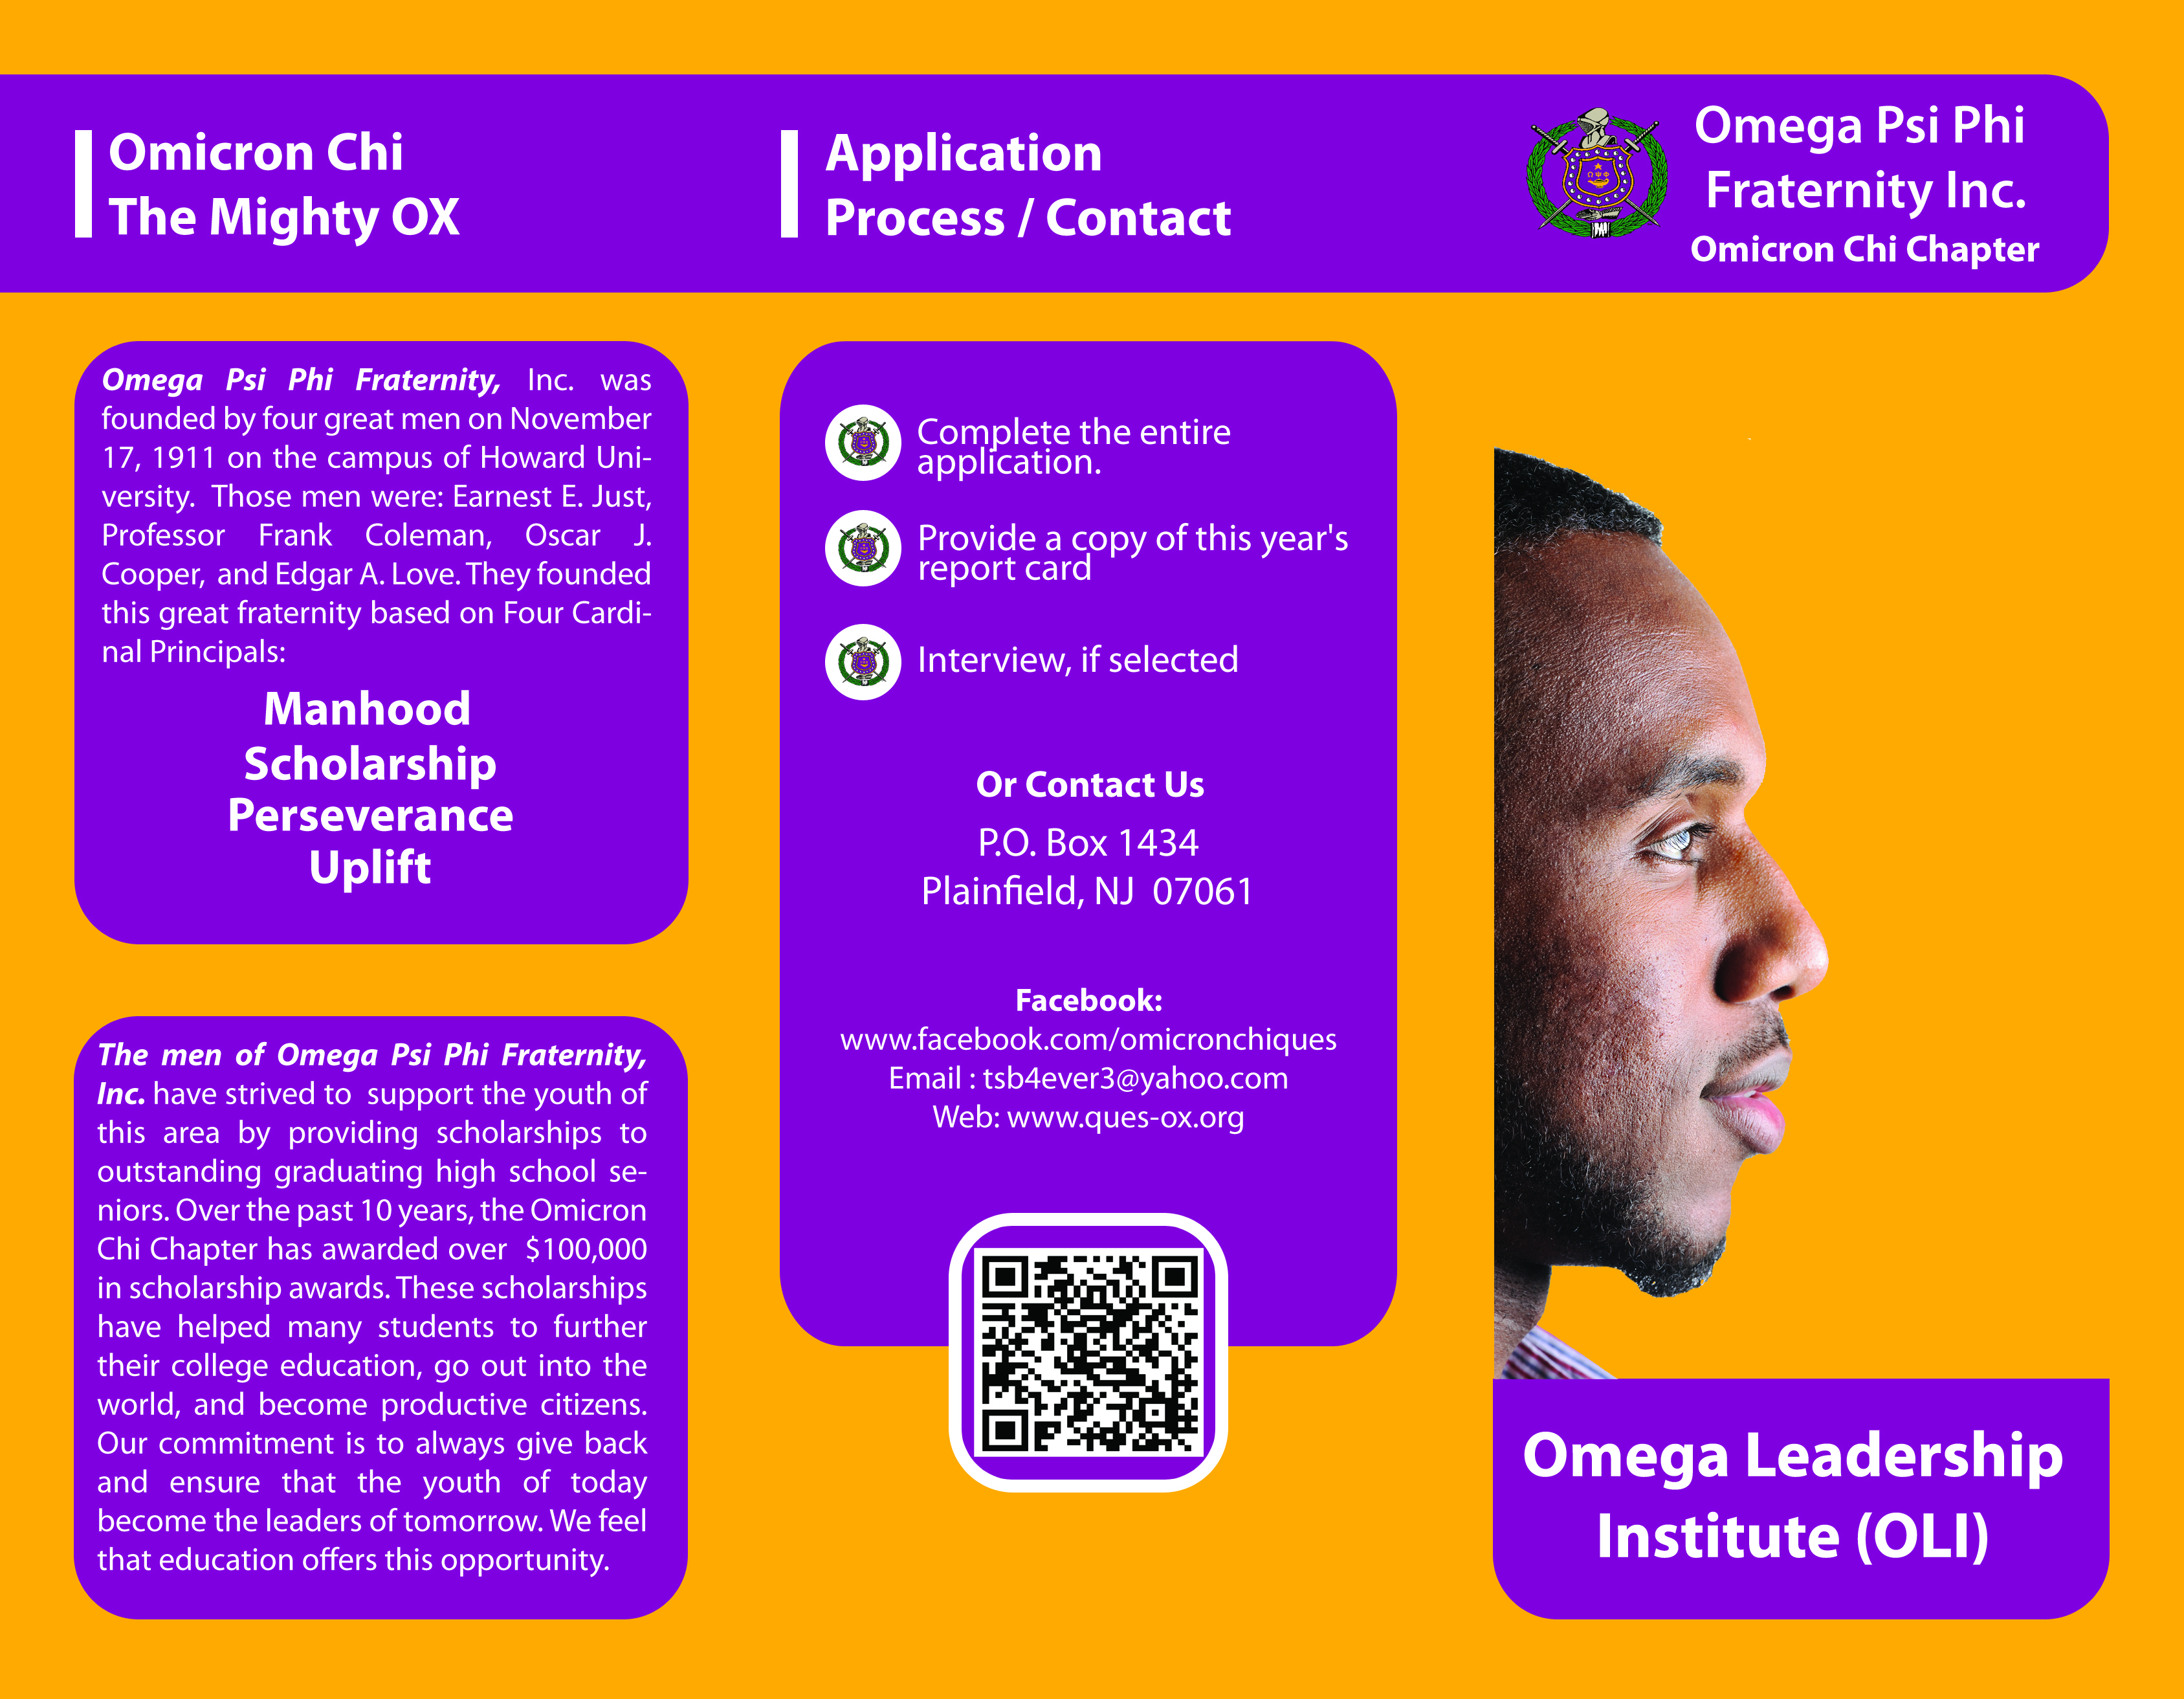 2015 Omega Leadership Institute Cover